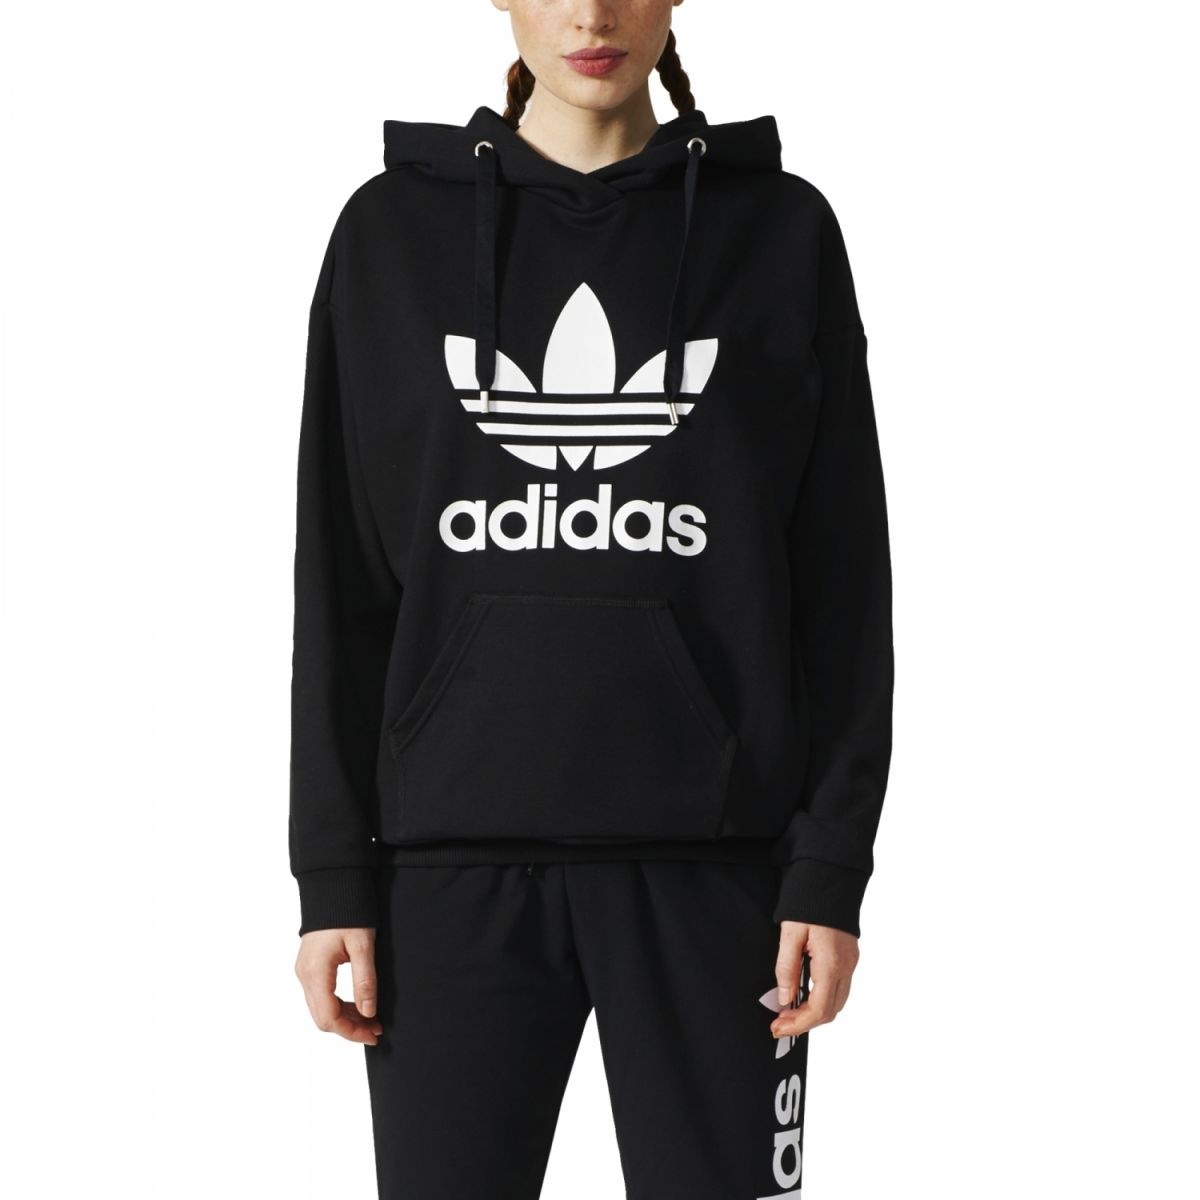 Billig Adidas Originals Sweatshirts Damen Sweatshirt Mit